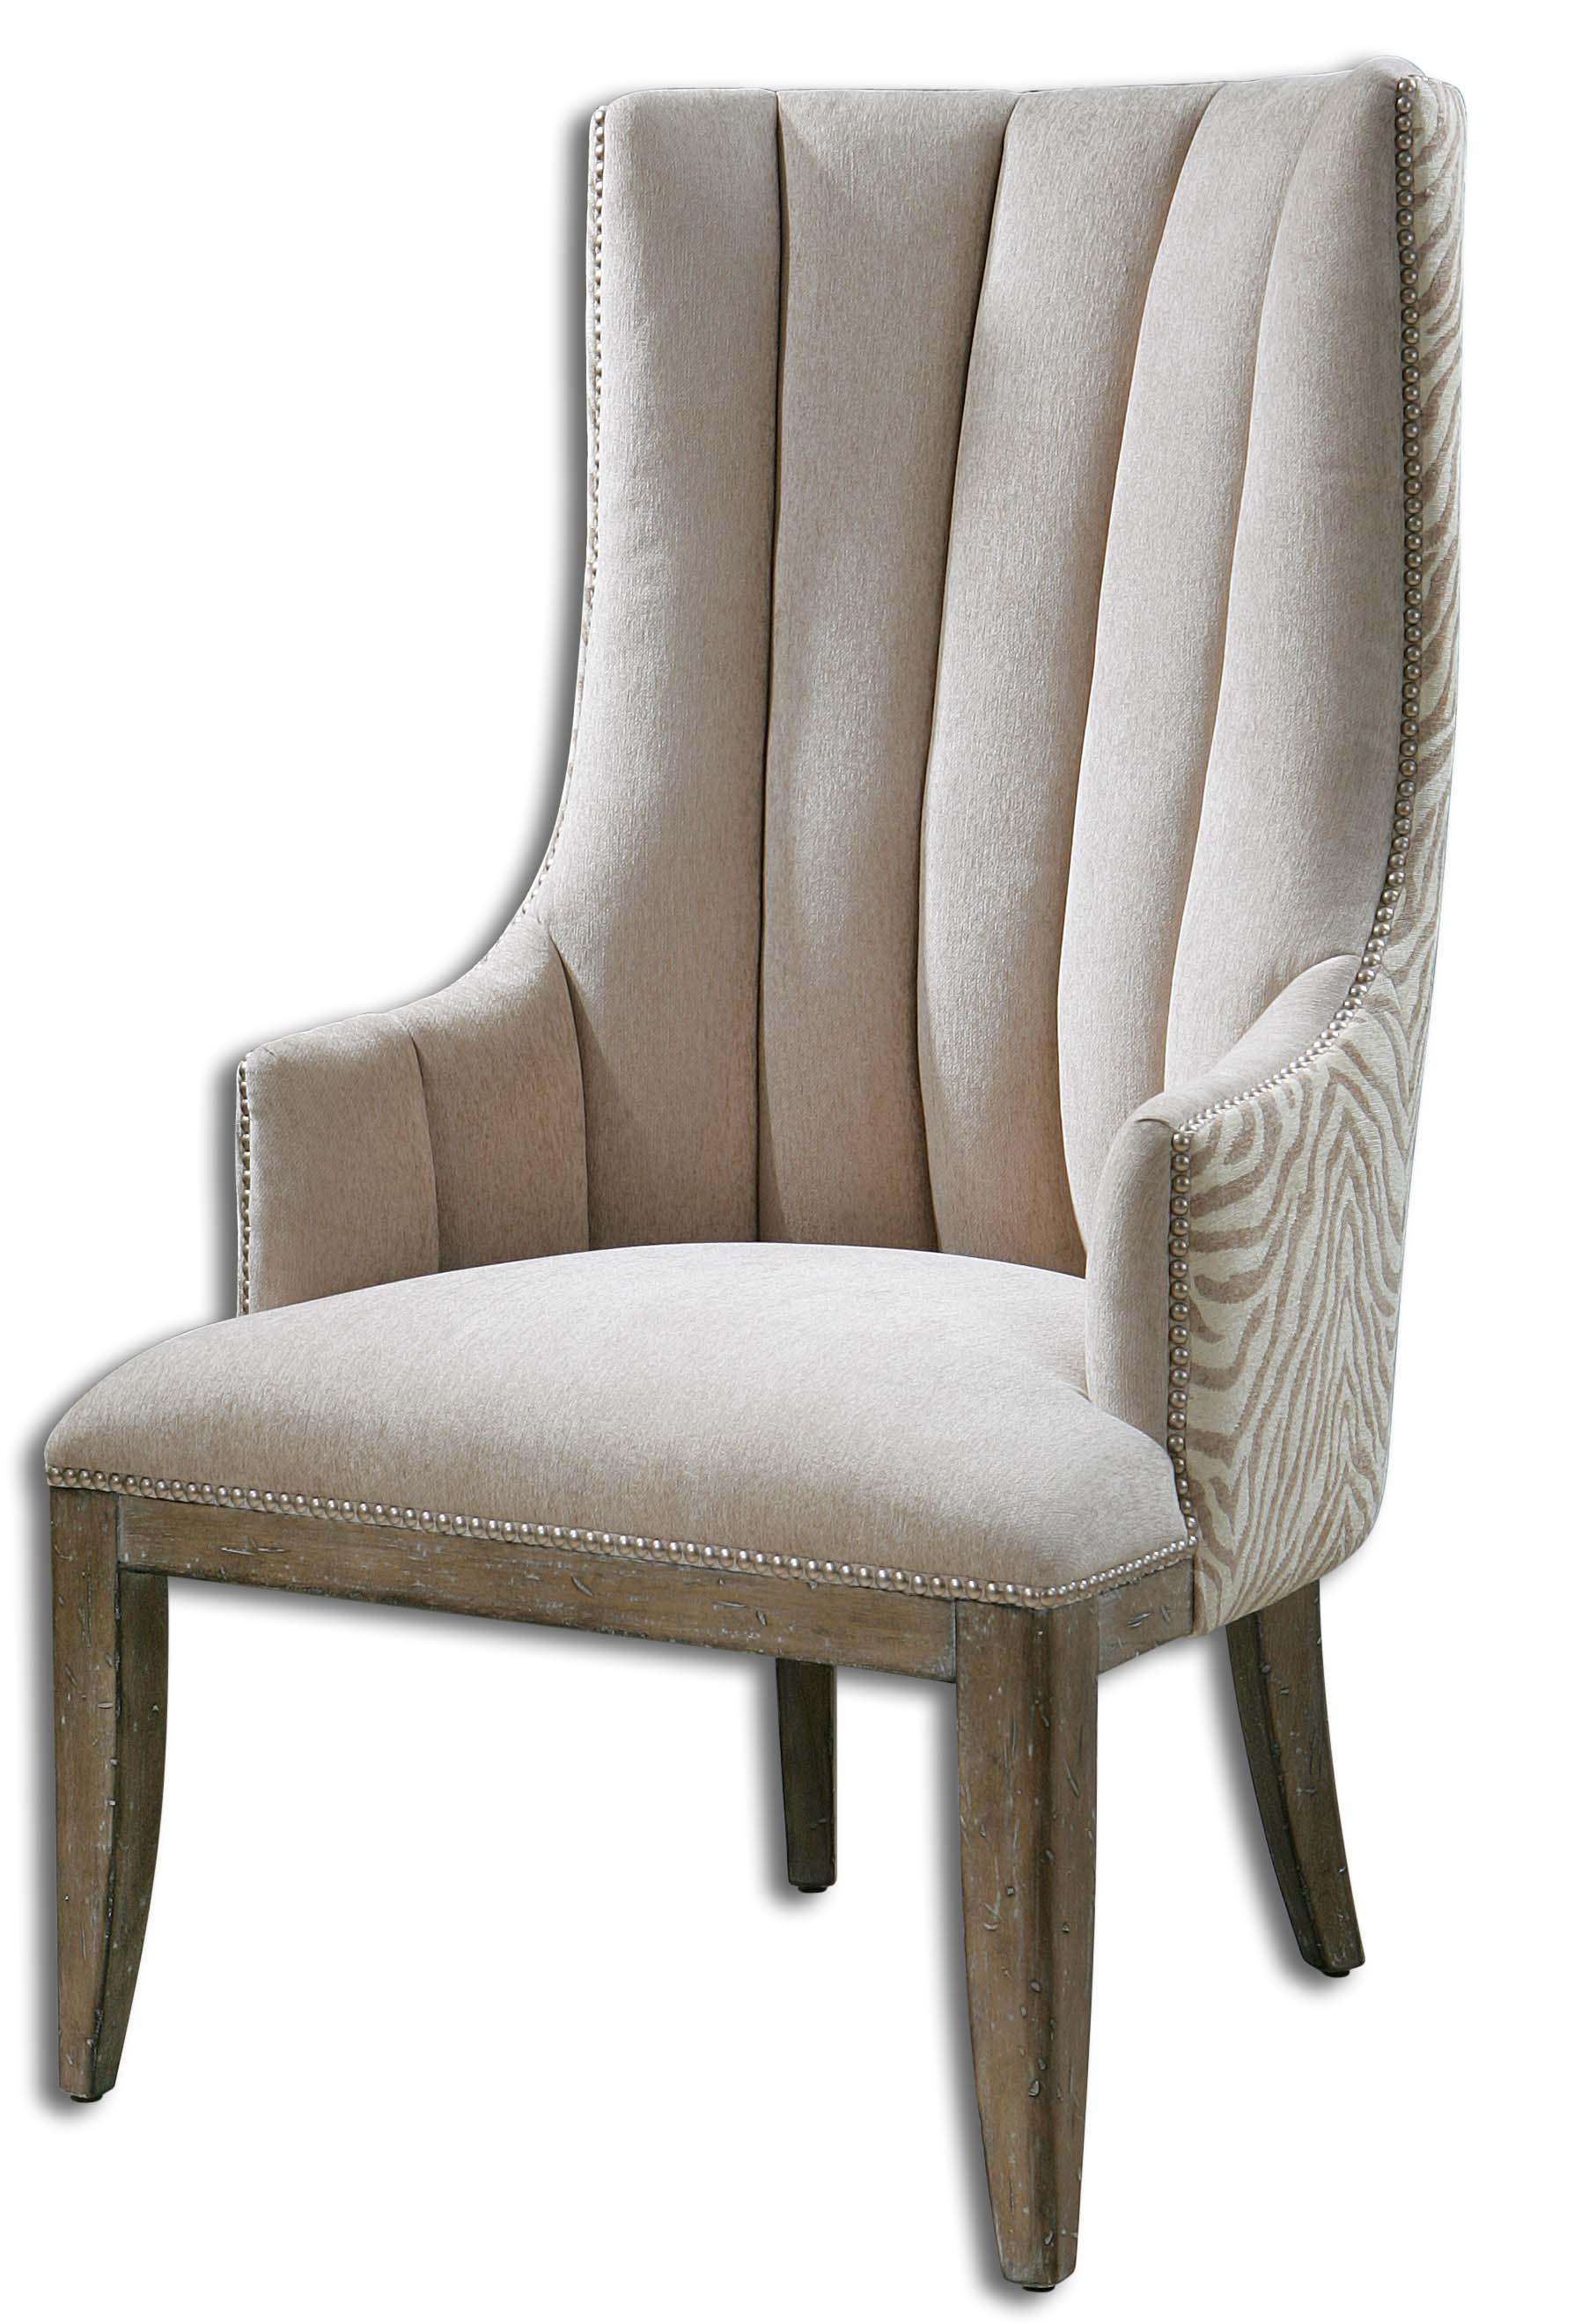 Uttermost Accent Furniture Zyla Chenille ArmChair - Item Number: 23117